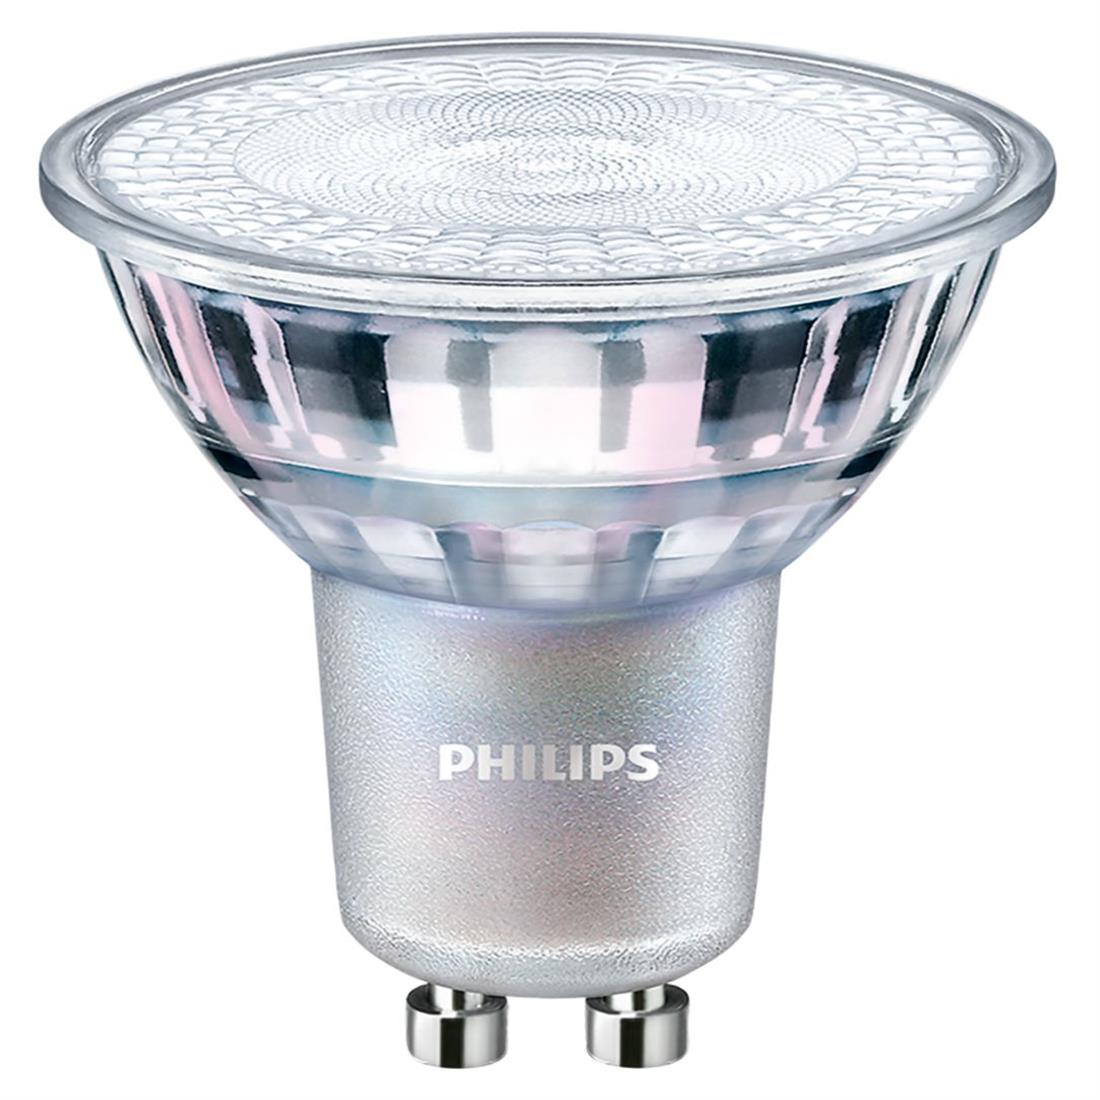 PHILIPS GU10 led lamp dimbaar 4.9W-50W warmwit 2700 kelvin 60gr CRI90